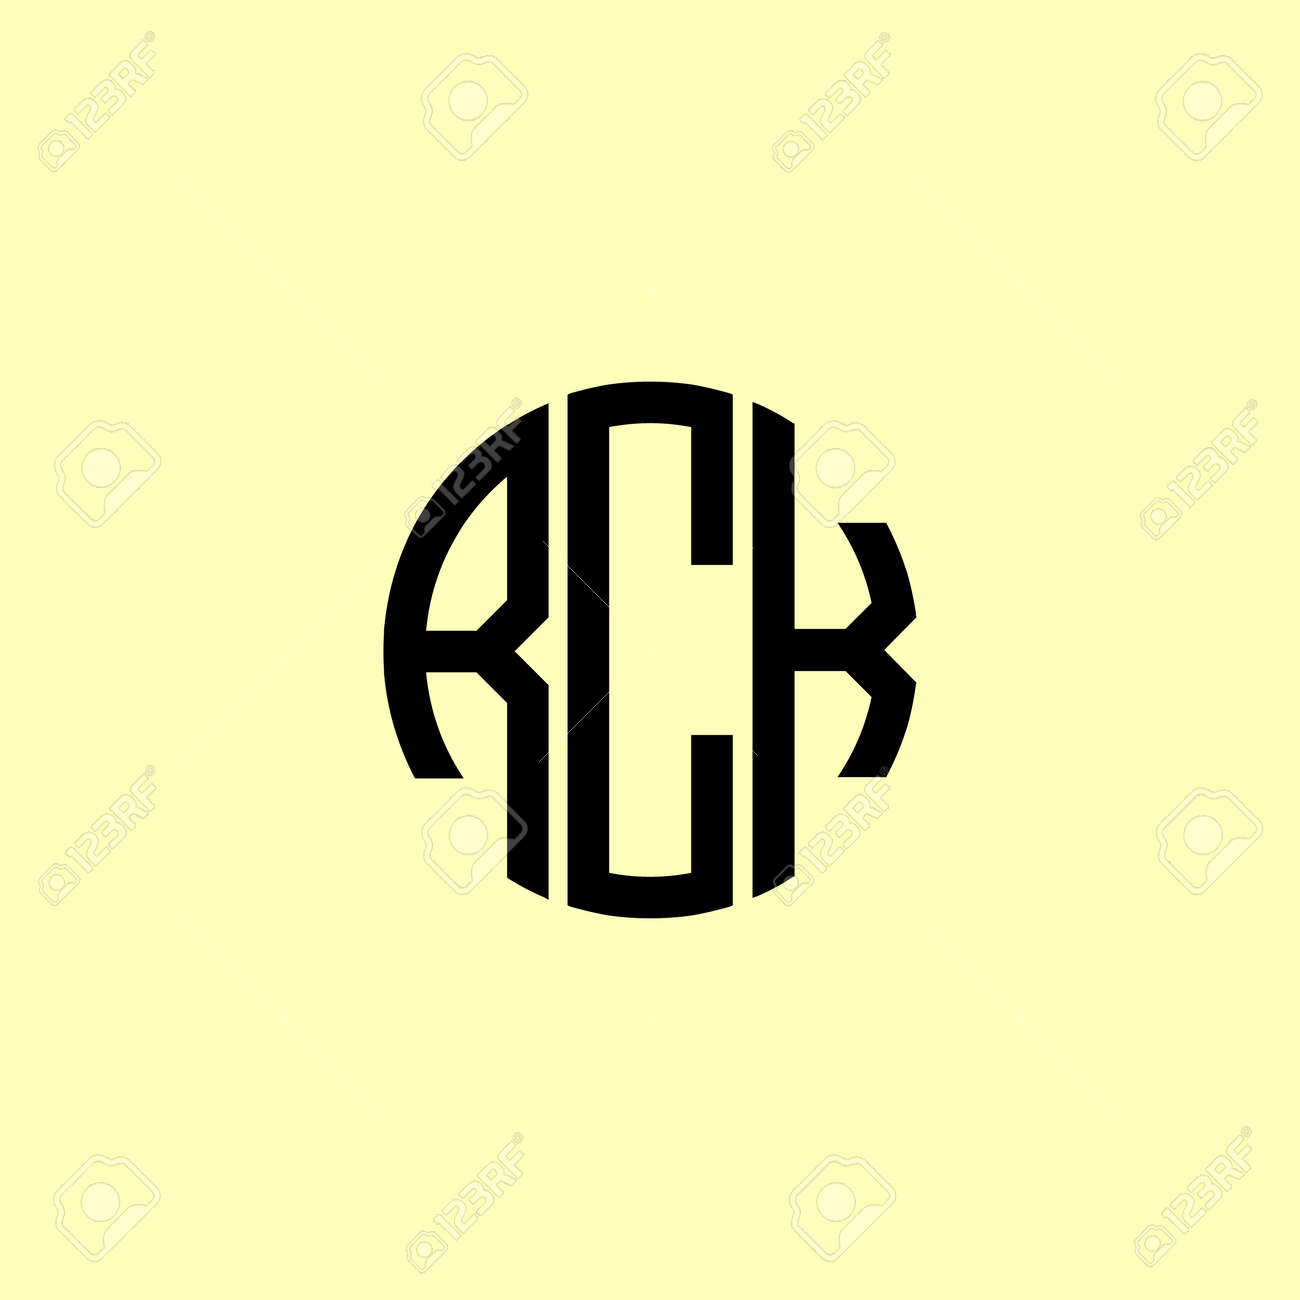 Creative Rounded Initial Letters RCK Logo. It will be suitable for which company or brand name start those initial. - 168950382